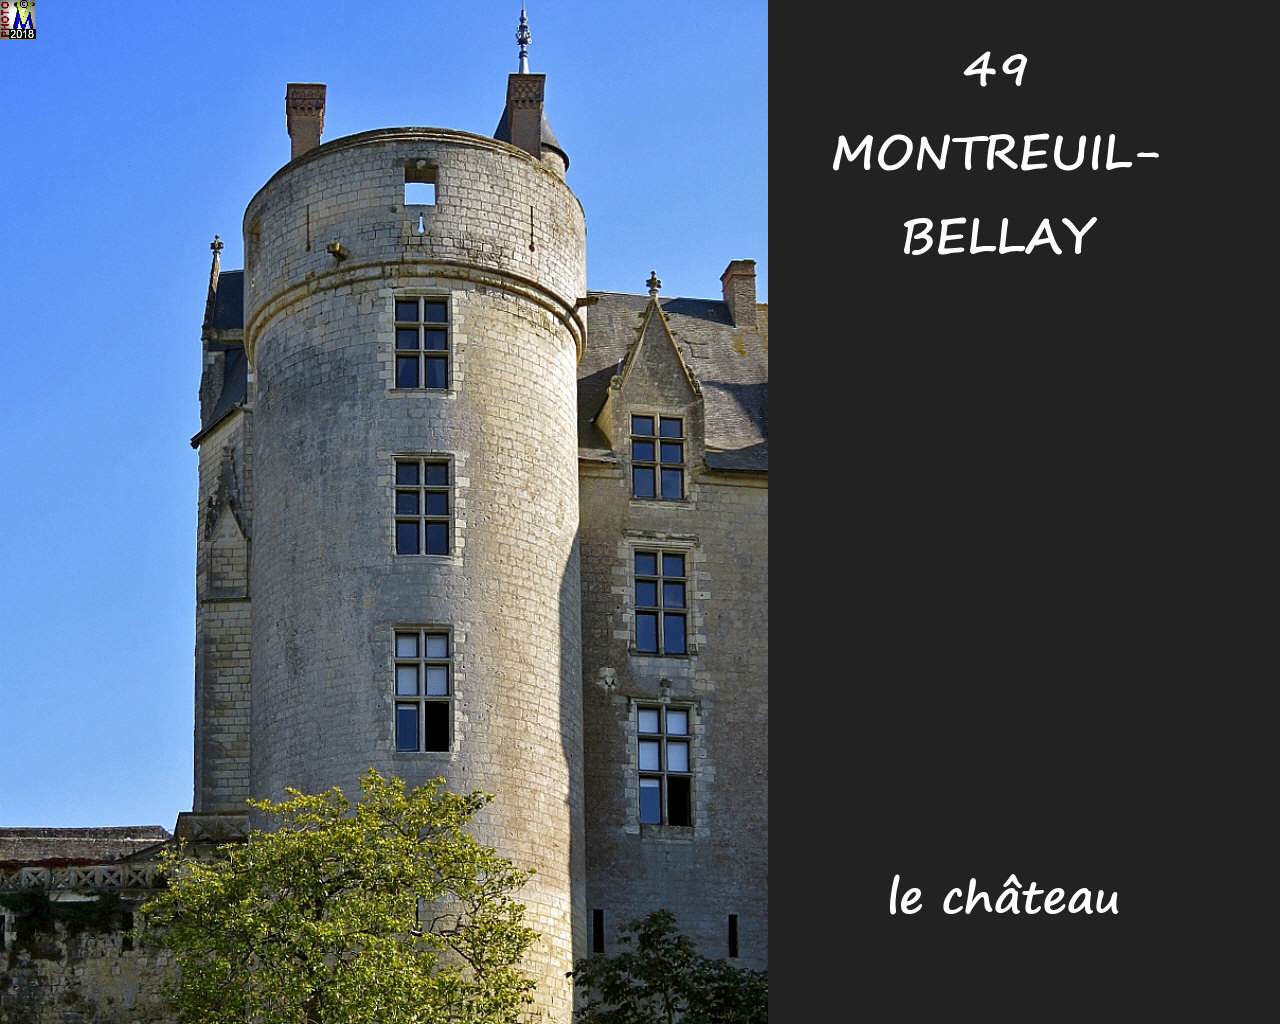 49MONTREUIL-BELLAY_chateau_1028.jpg